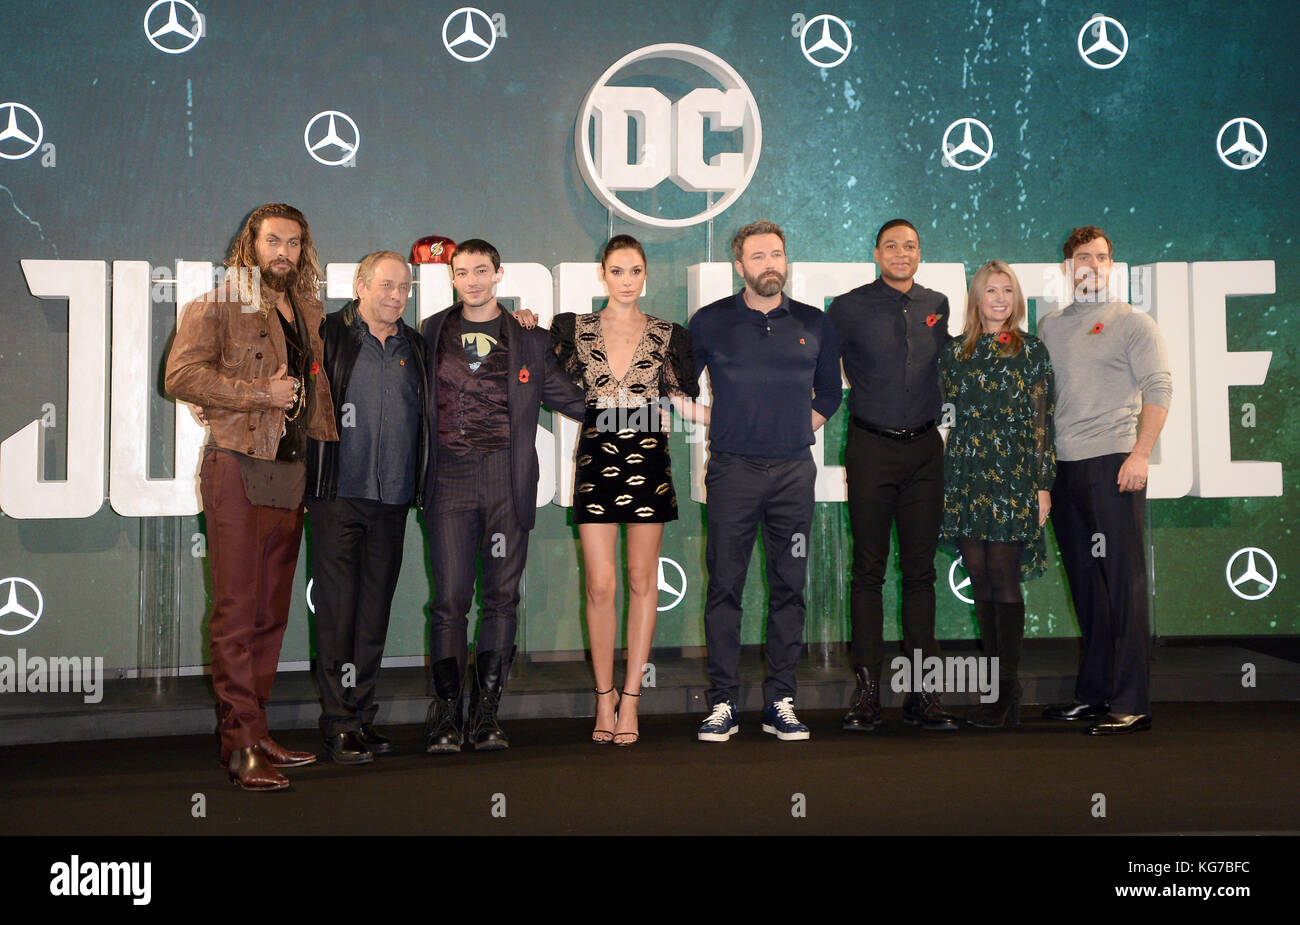 Photo Must Be Credited ©Alpha Press 078237 04/11/2017 Jason Momoa, producer Charles Roven, Ezra Miller, Gal - Stock Image